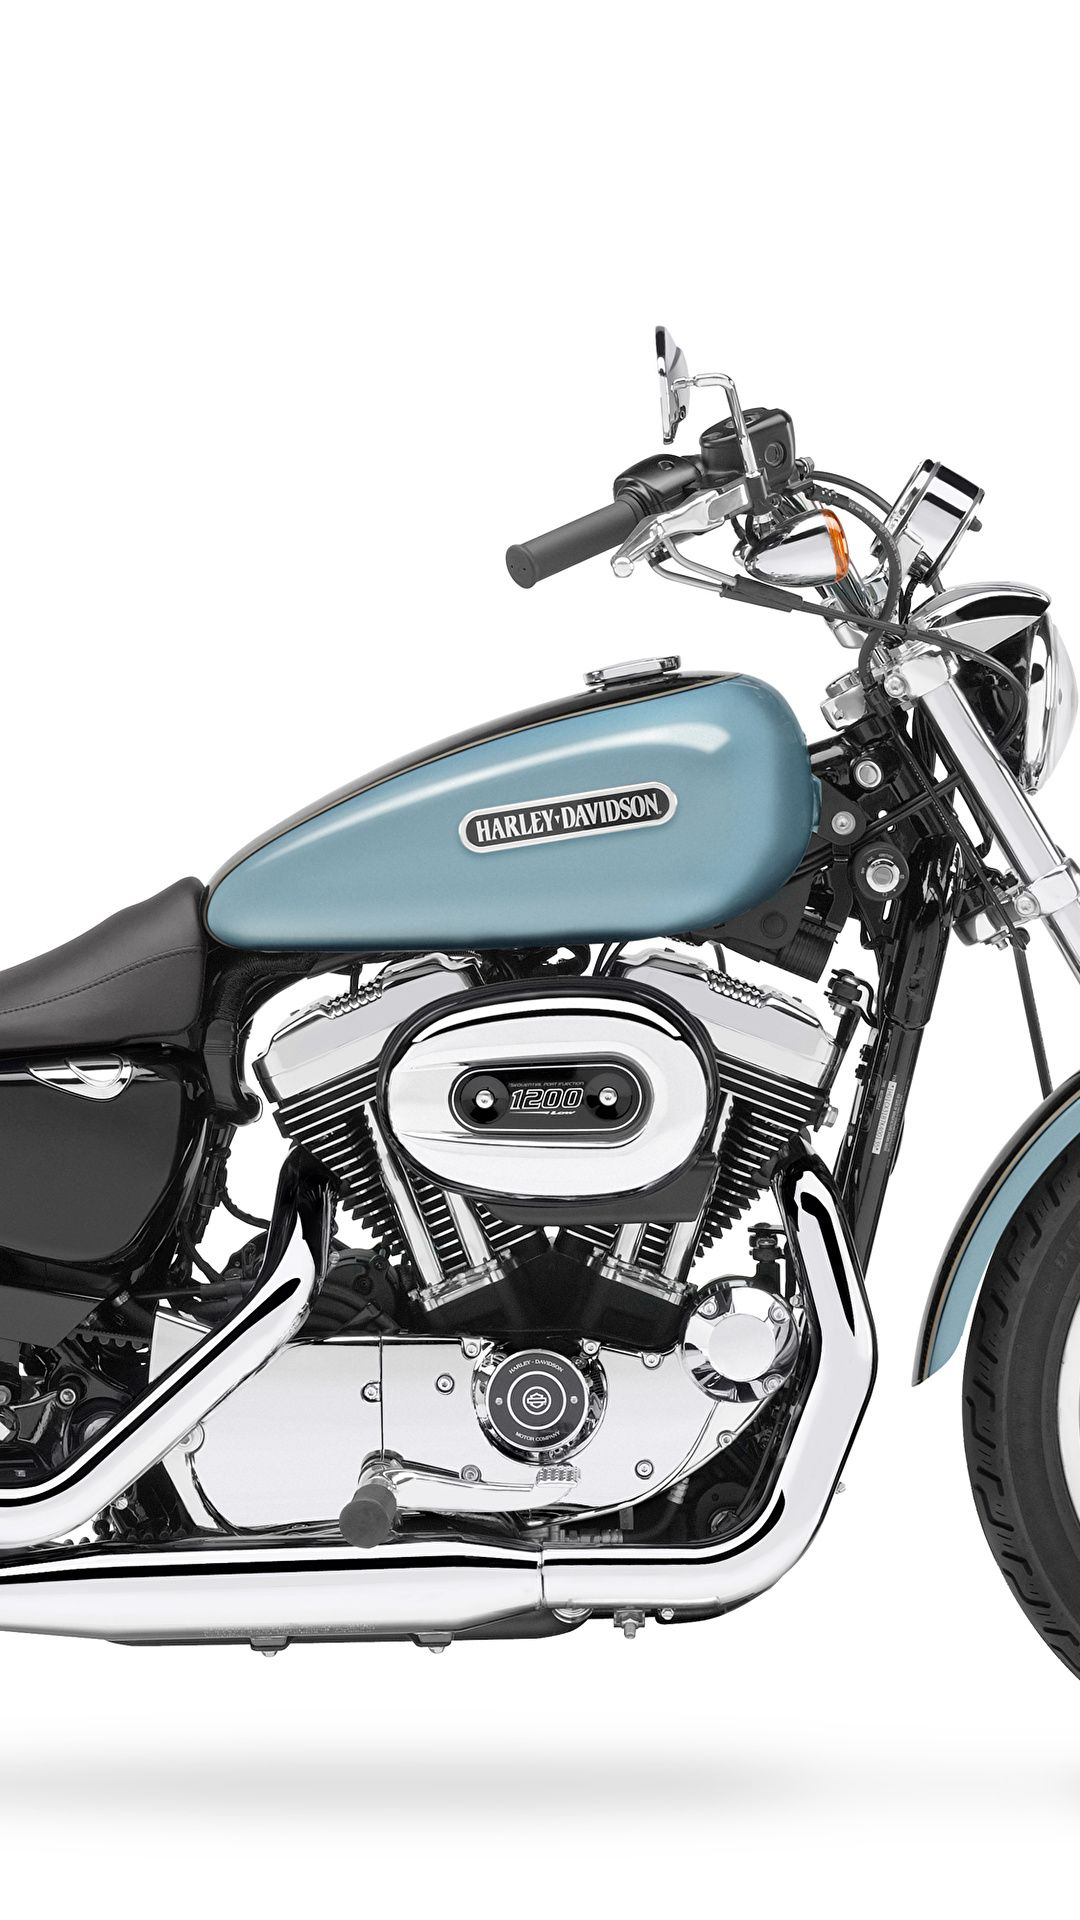 Wallpaper Harleydavidson Sportster Low Xll Motorcycles On The Side Of White Background